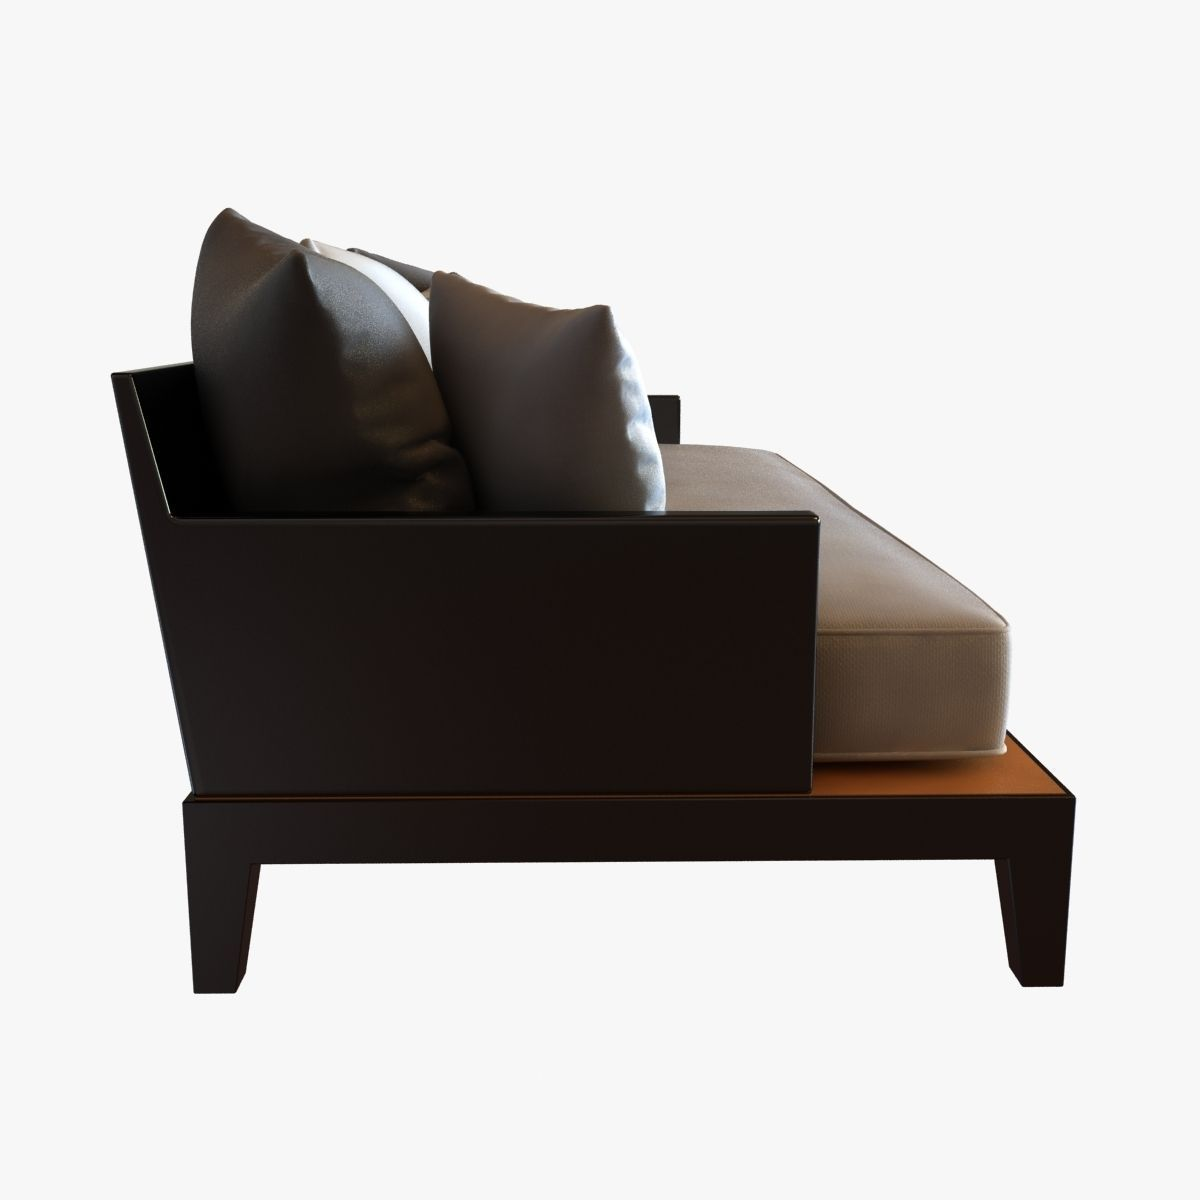 christian liaigre sofa for holly hunt opium 3D Model MAX